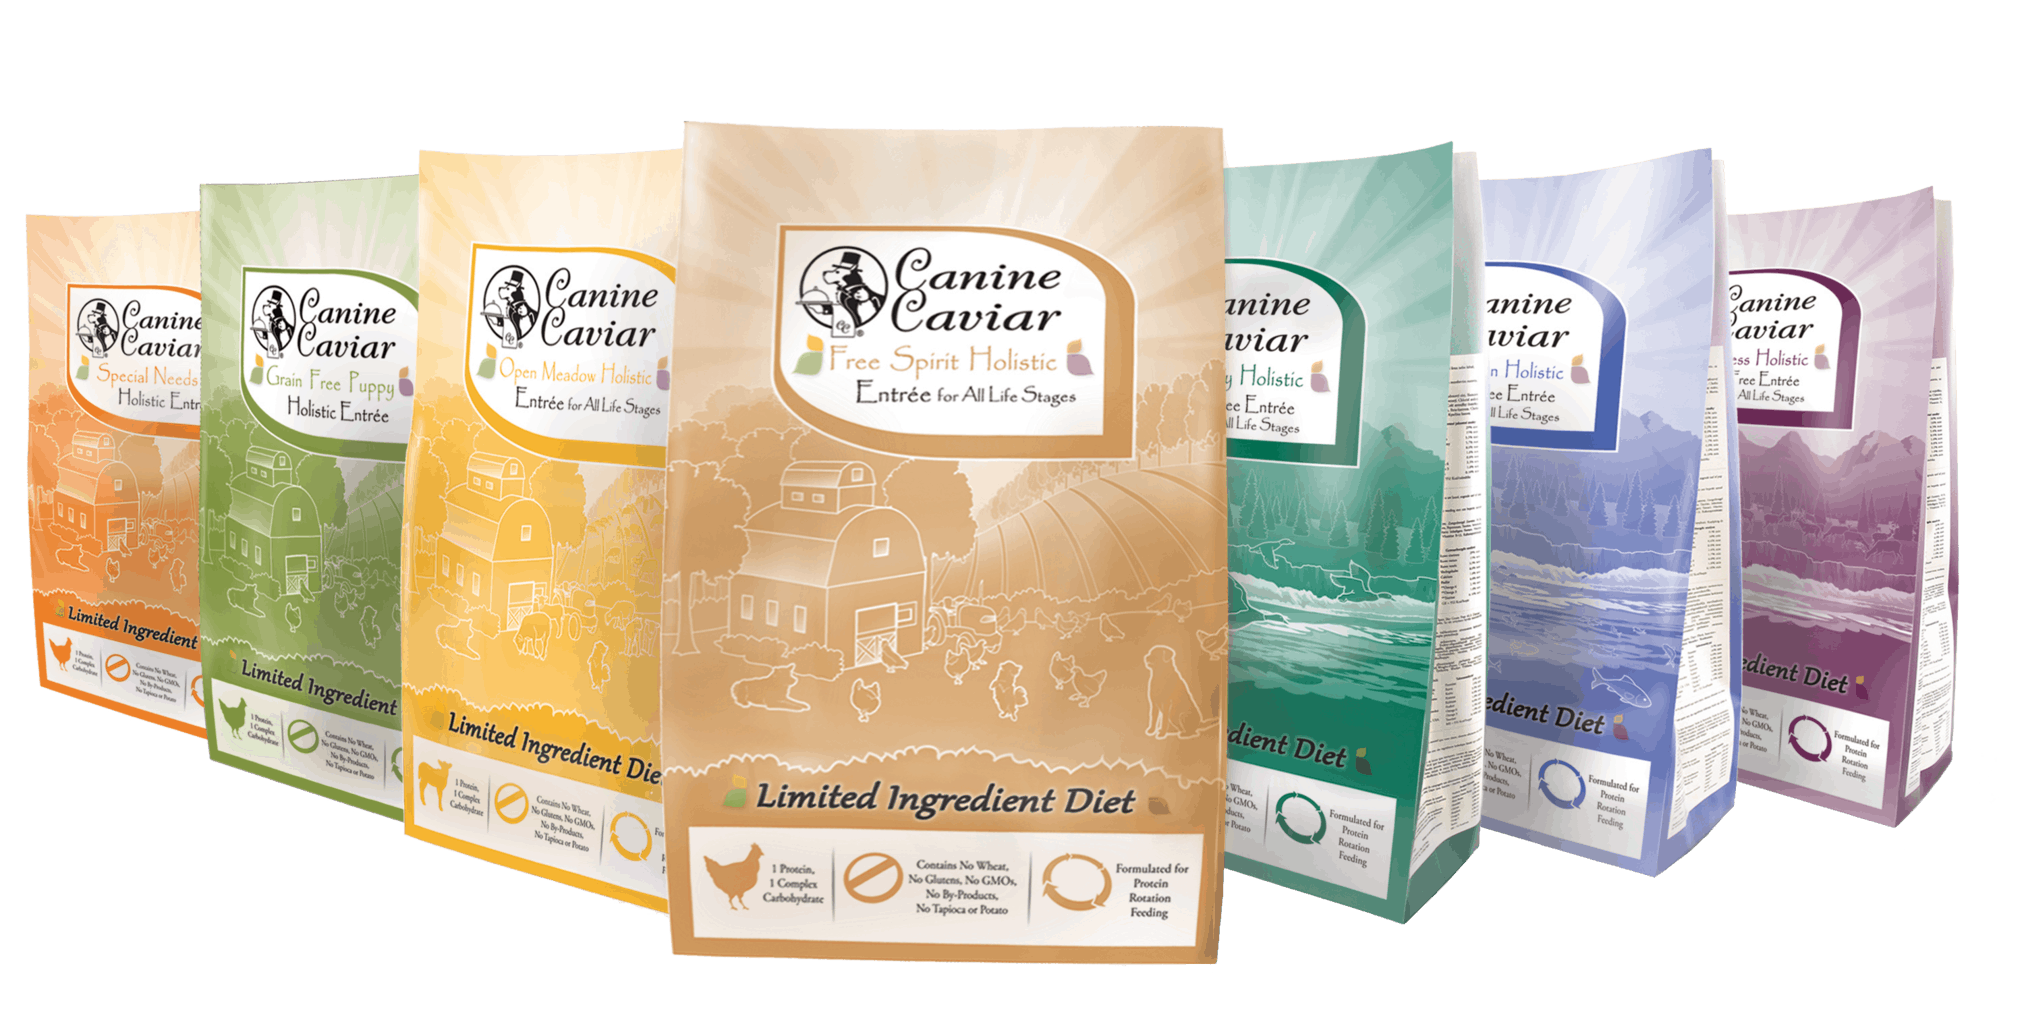 Canine Caviar Dog Food Review 2020: First & Best Alkaline Pet Food? 5